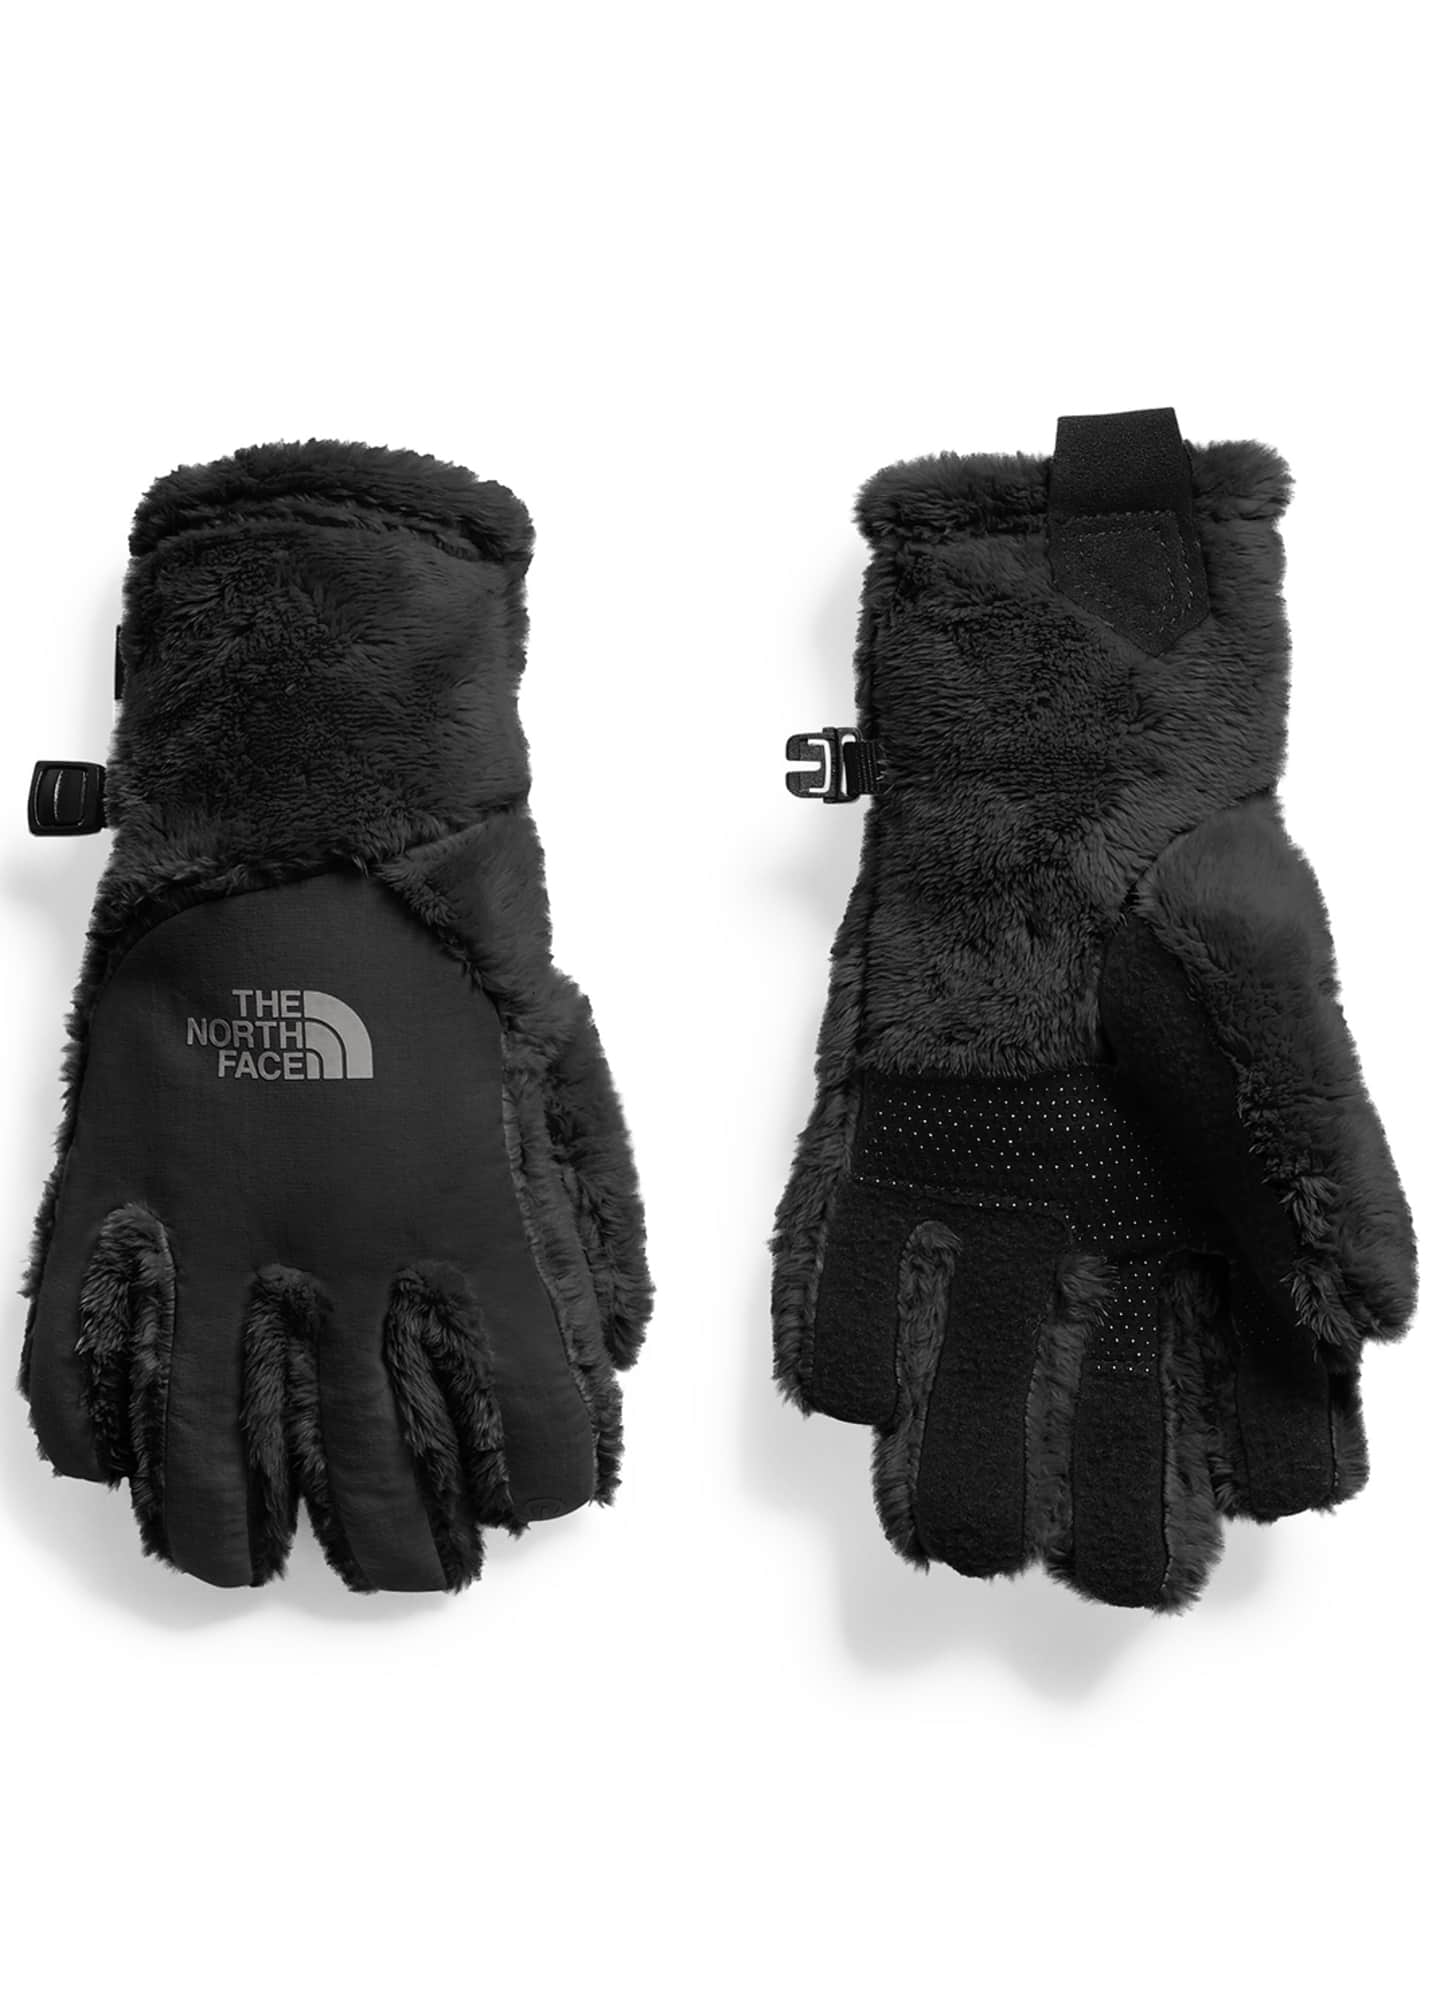 The North Face Girls' Osito Etip Gloves, Size